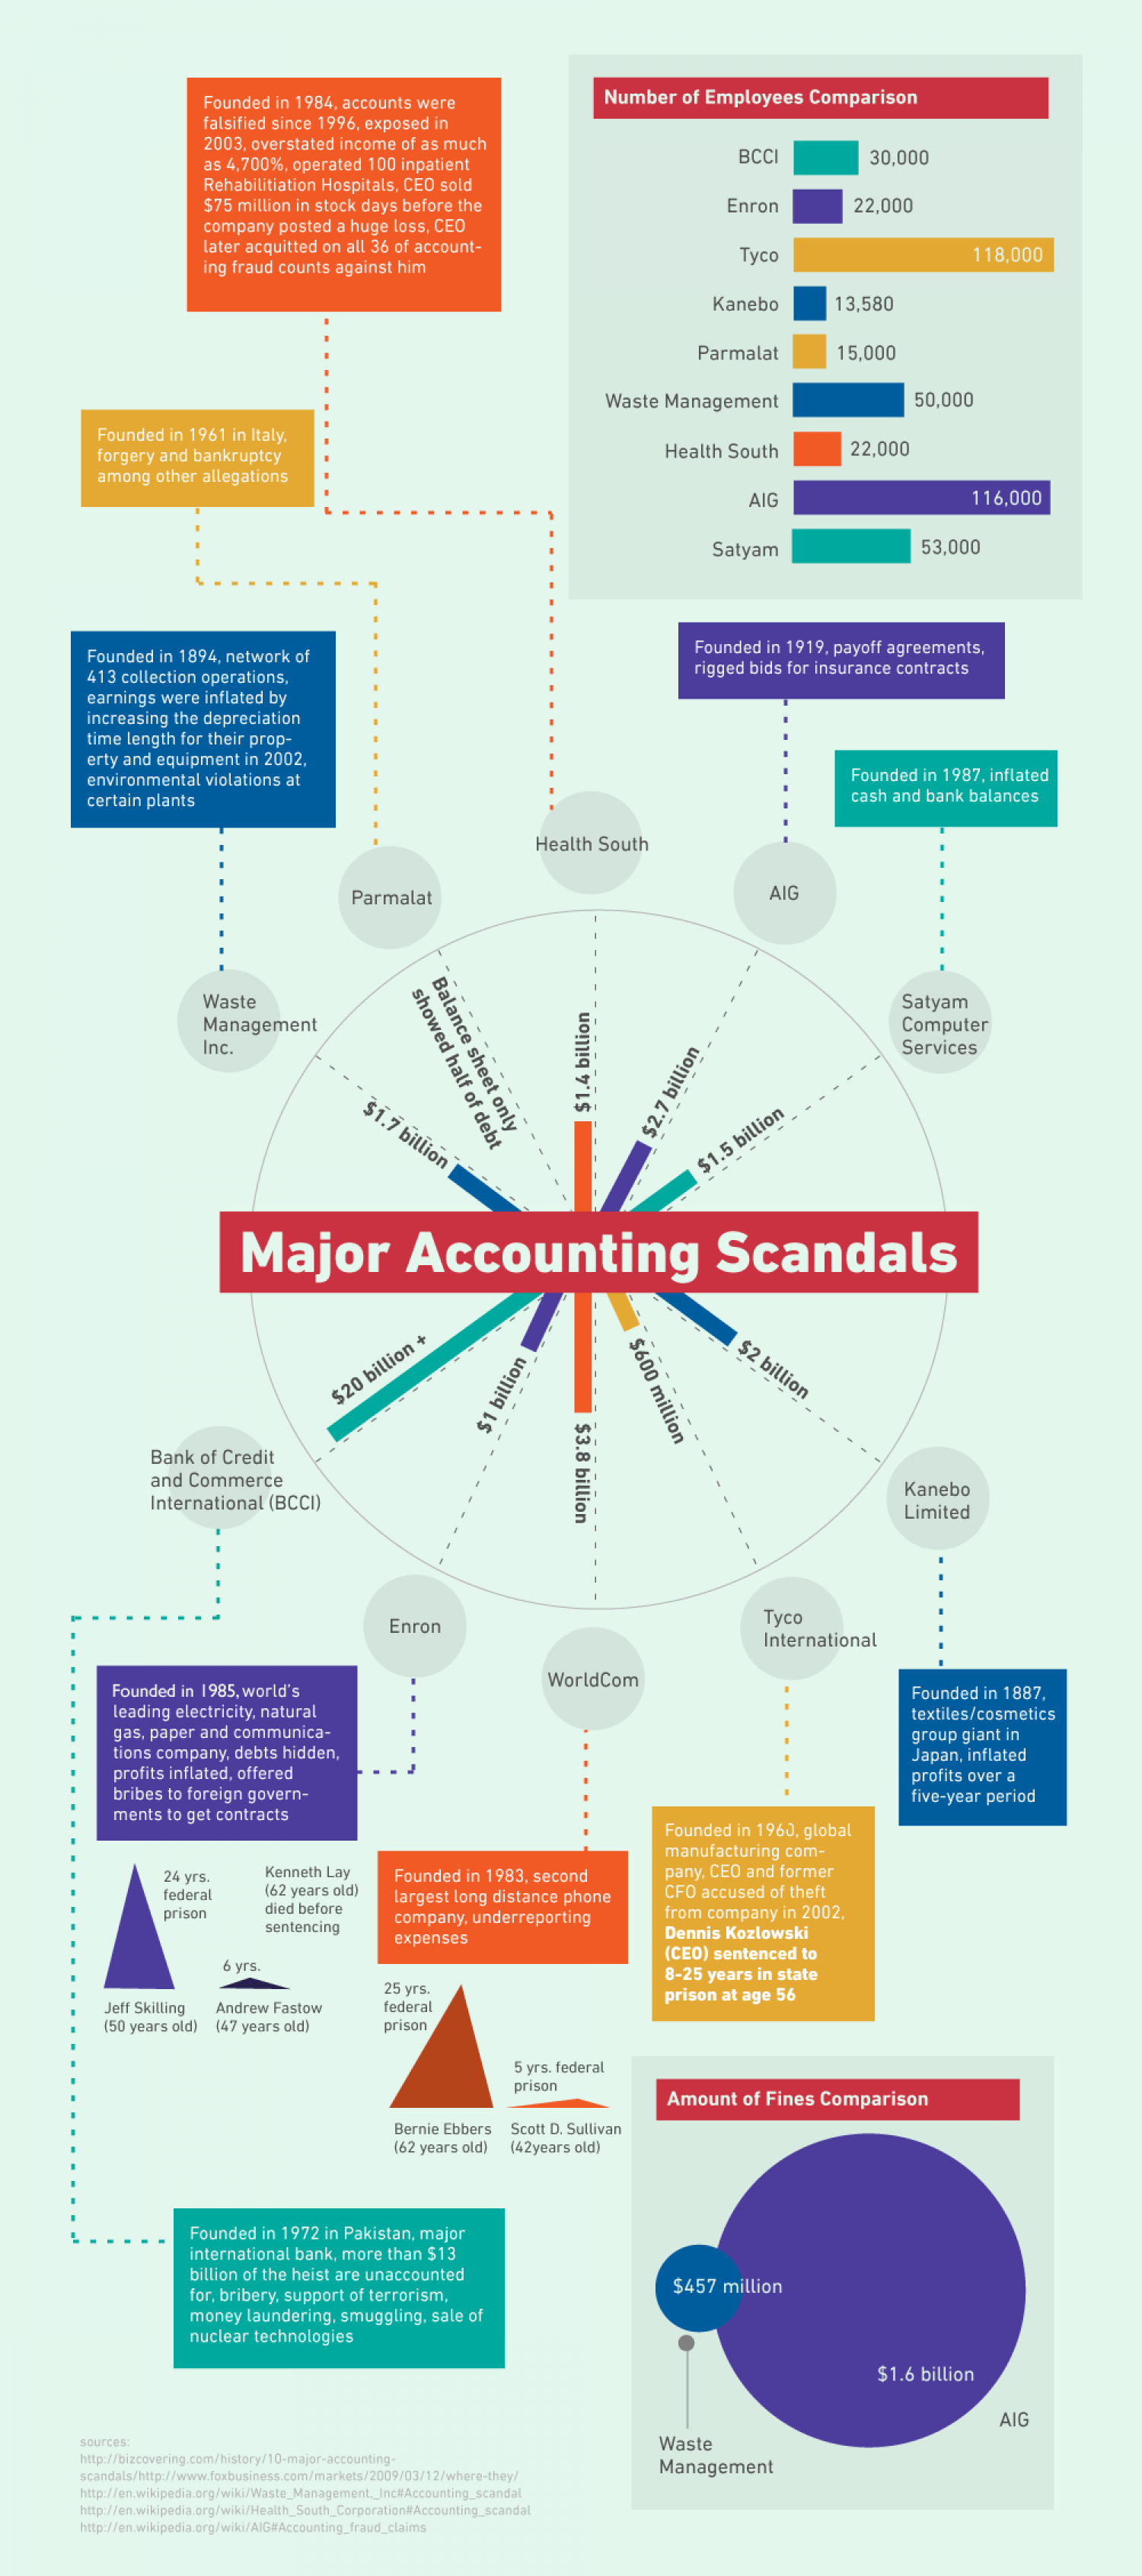 Major Accounting Scandals Infographic